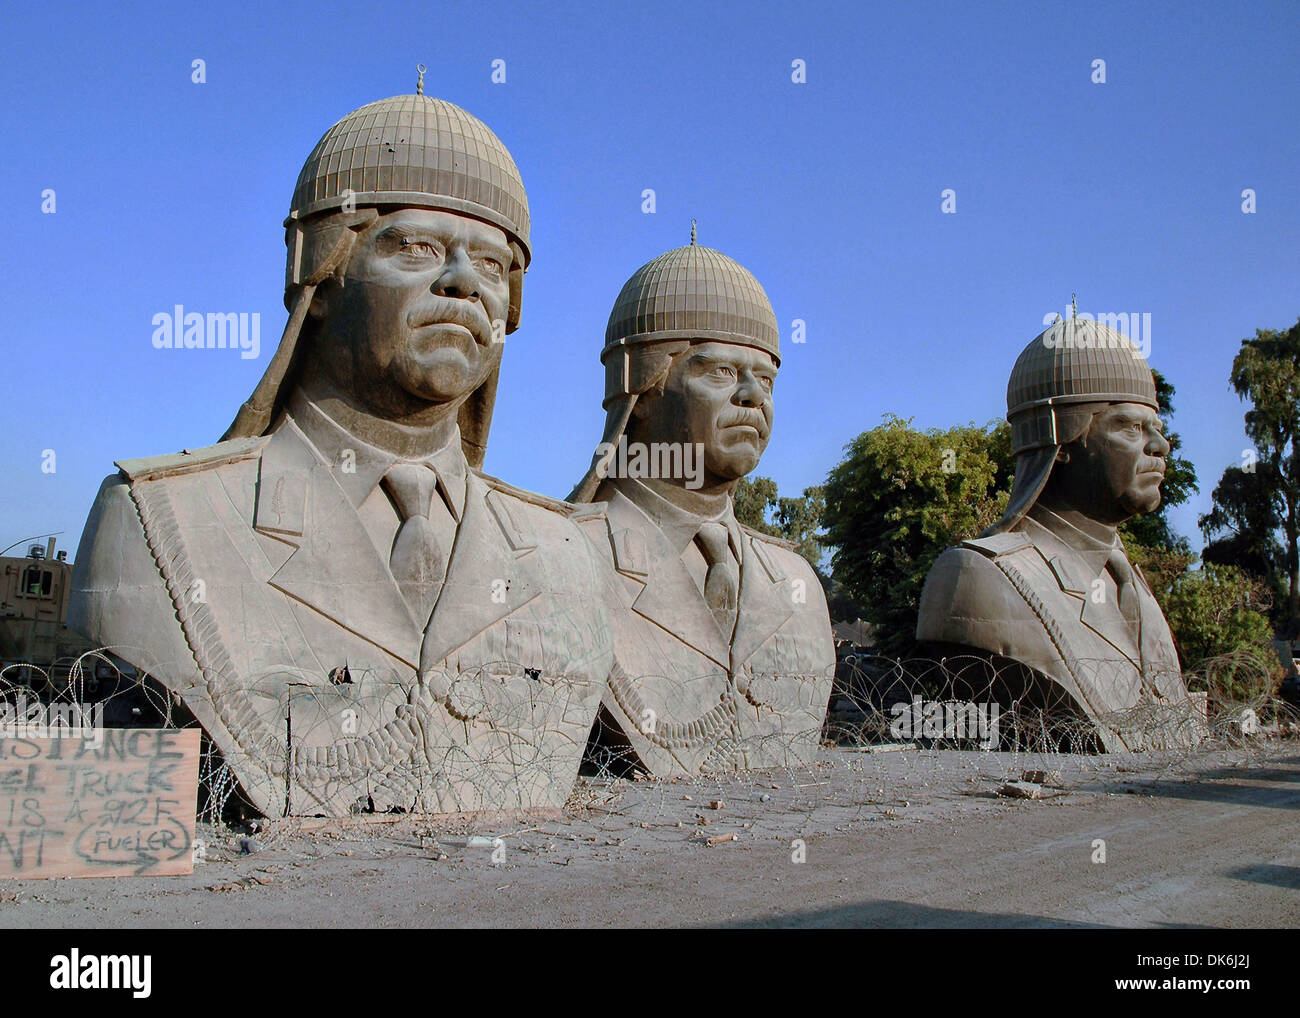 Thirty-foot tall bronze sculptures of former Iraqi dictator Saddam Hussein, sit on the grounds of the Republican - Stock Image